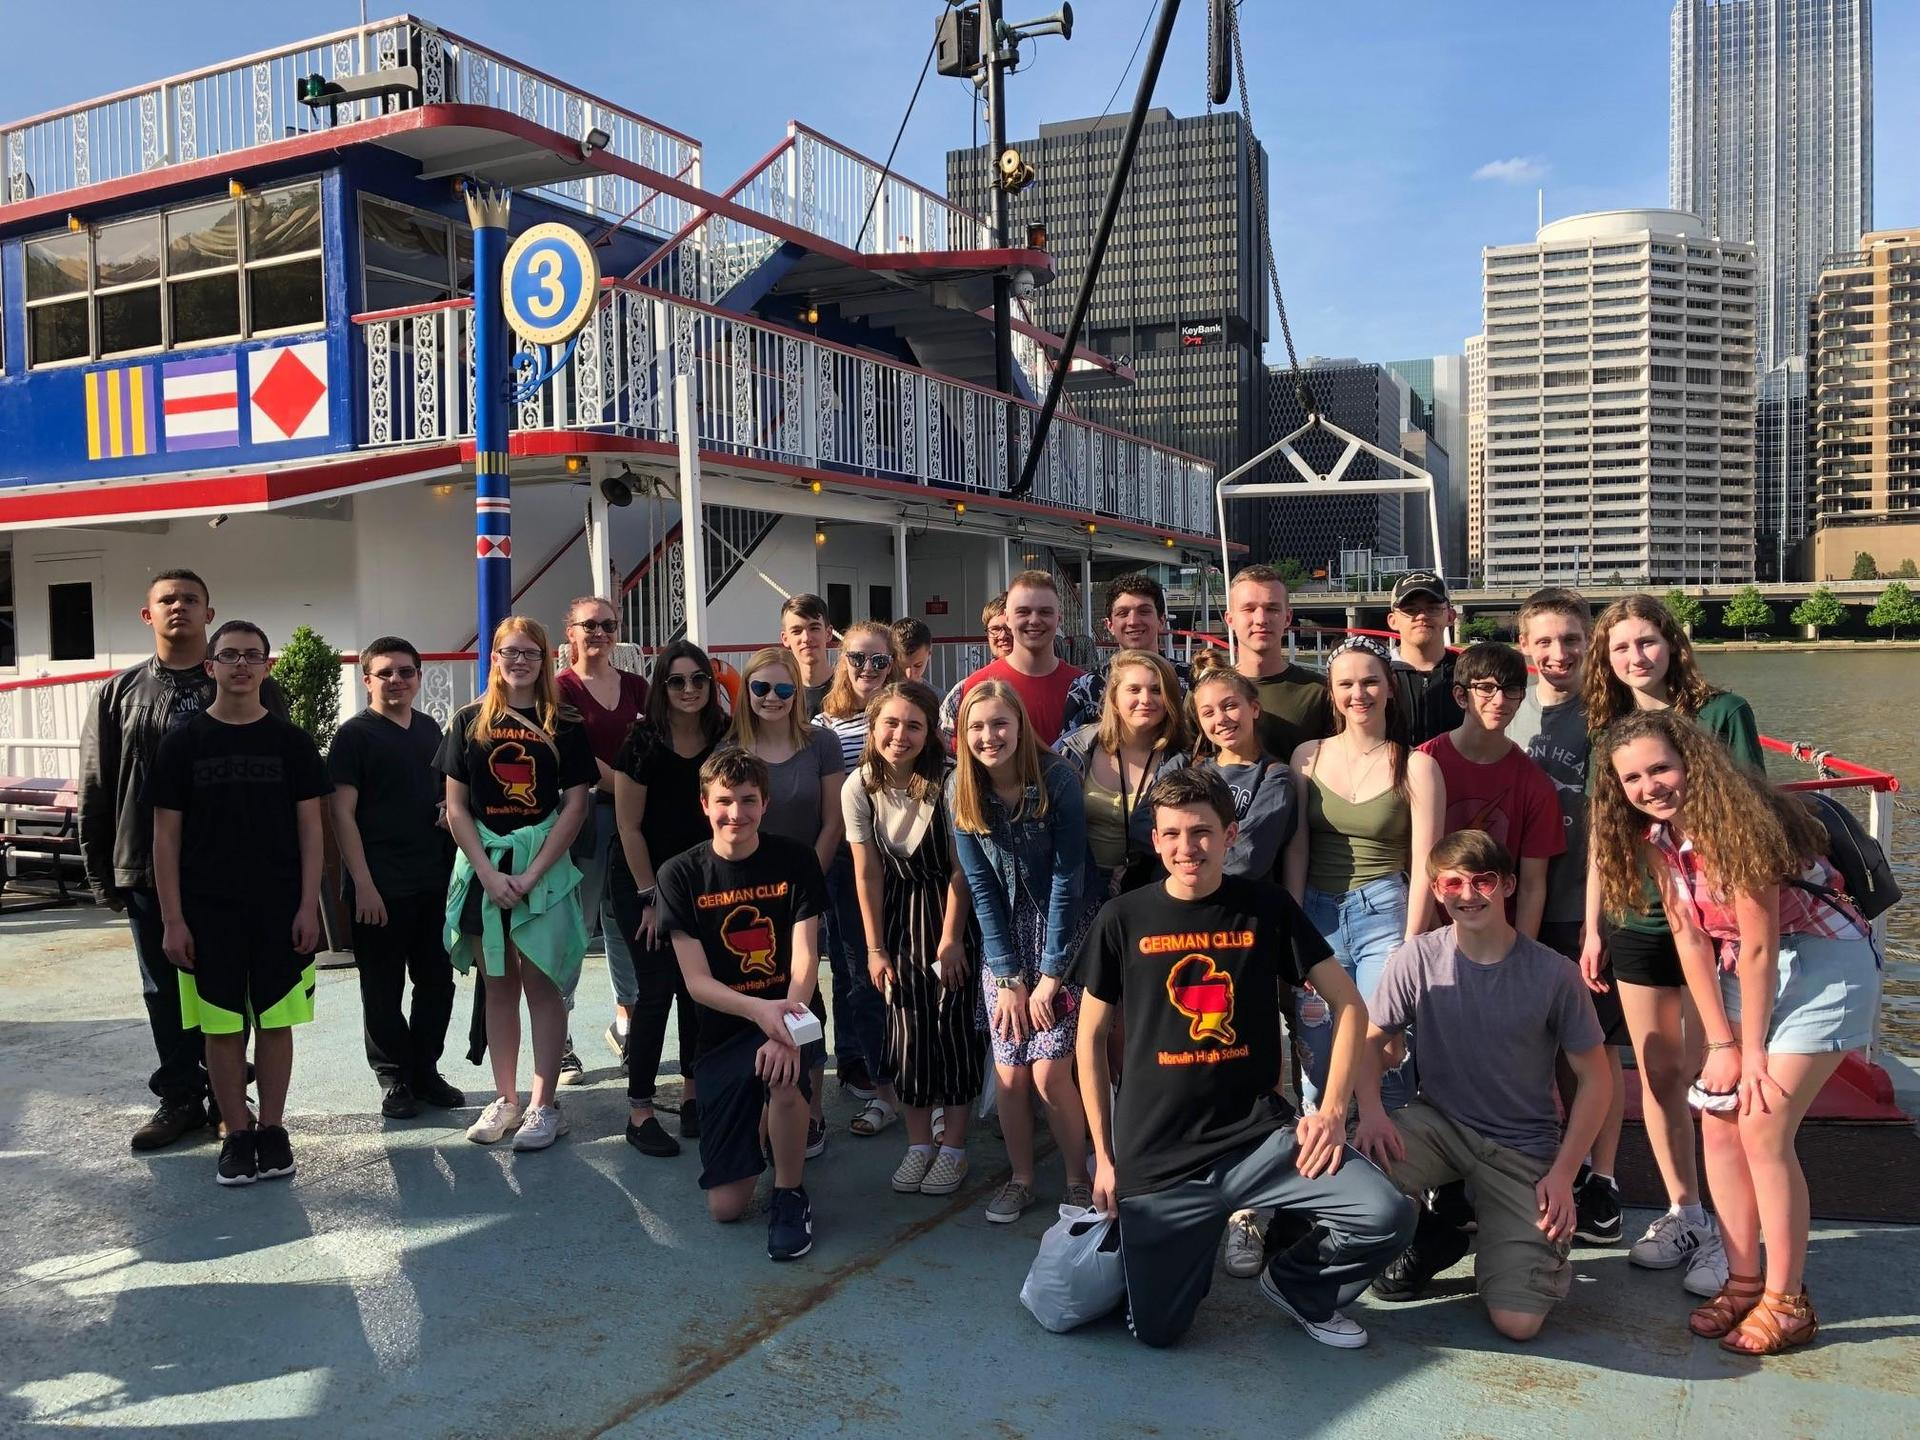 German Gateway Clipper Cruise on May 2, 2019